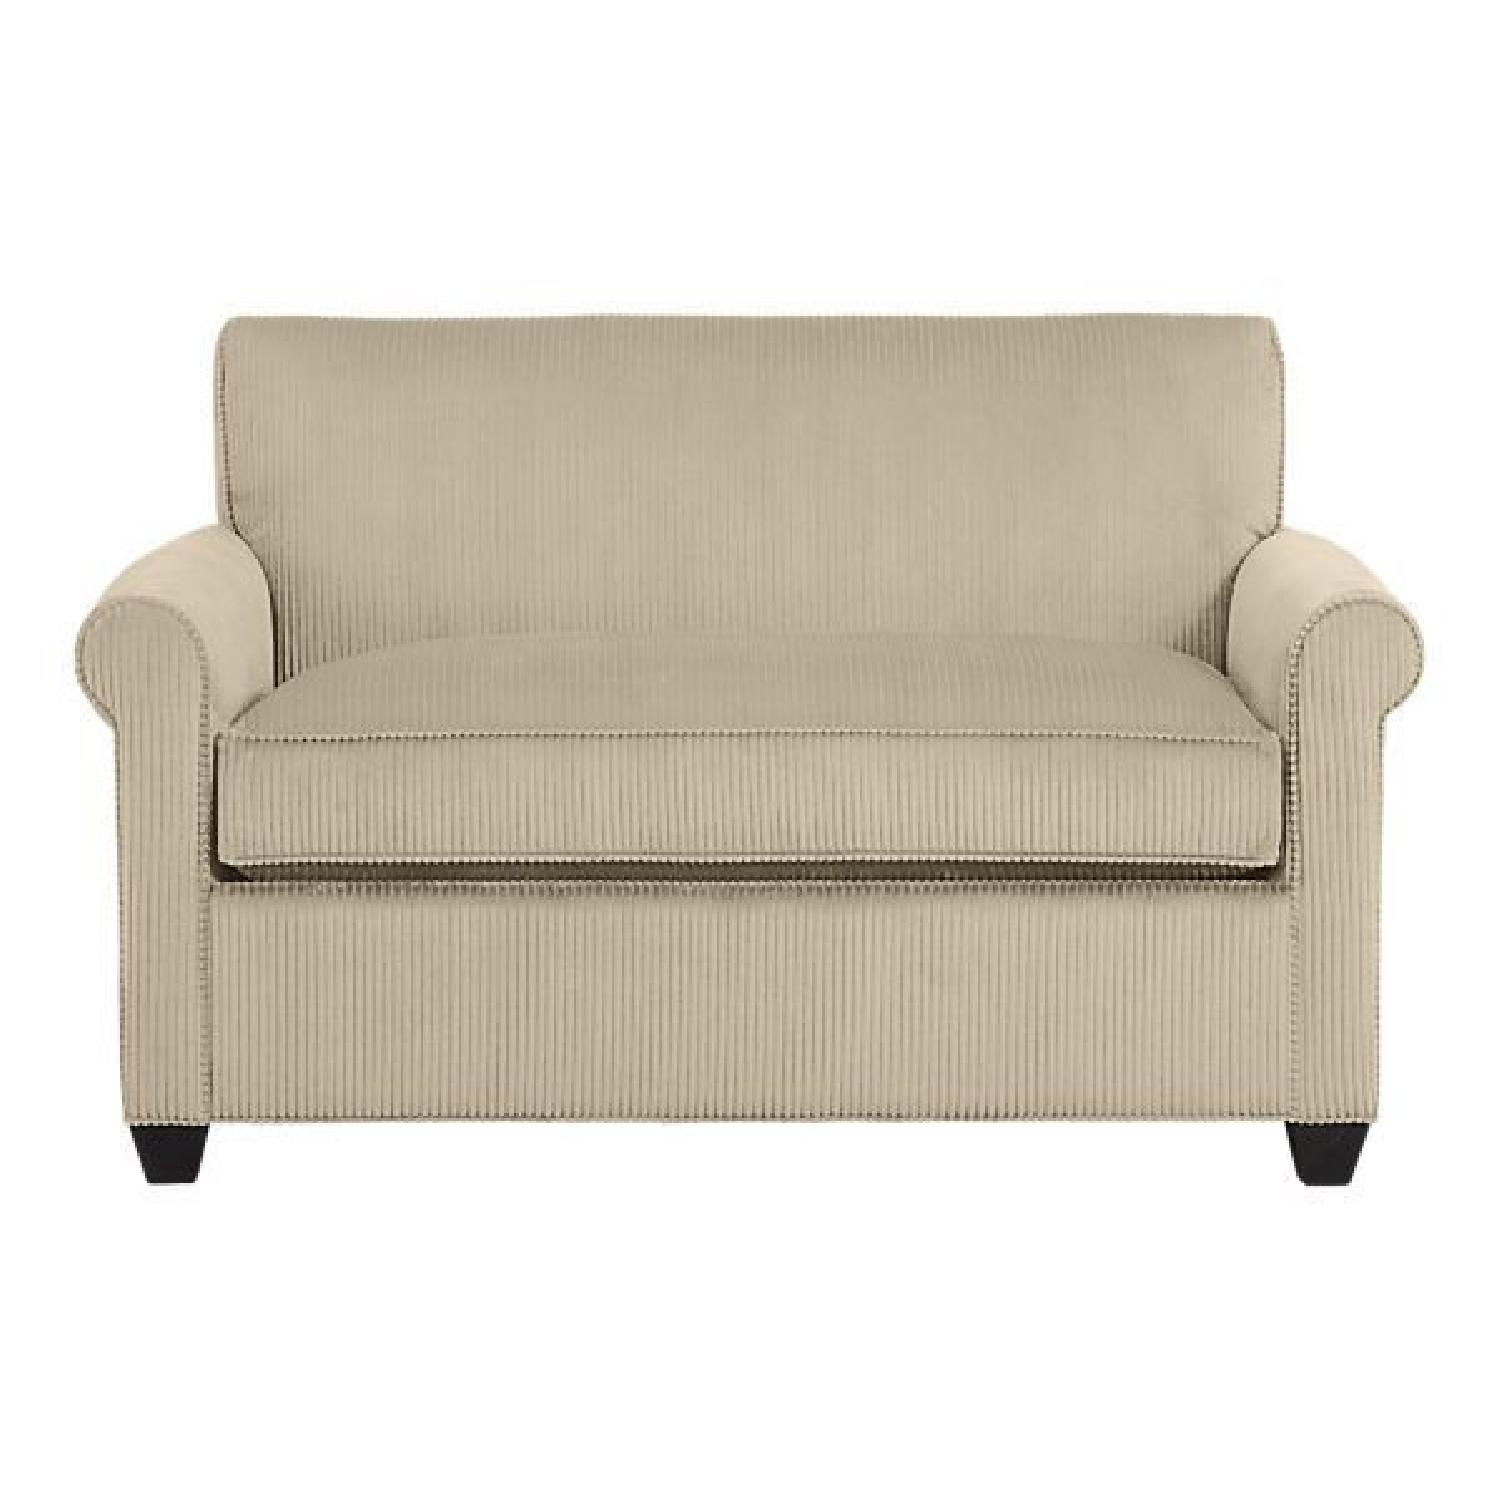 Crate & Barrel Oxford Loveseat w/ Twin Bed Pull Out - image-4